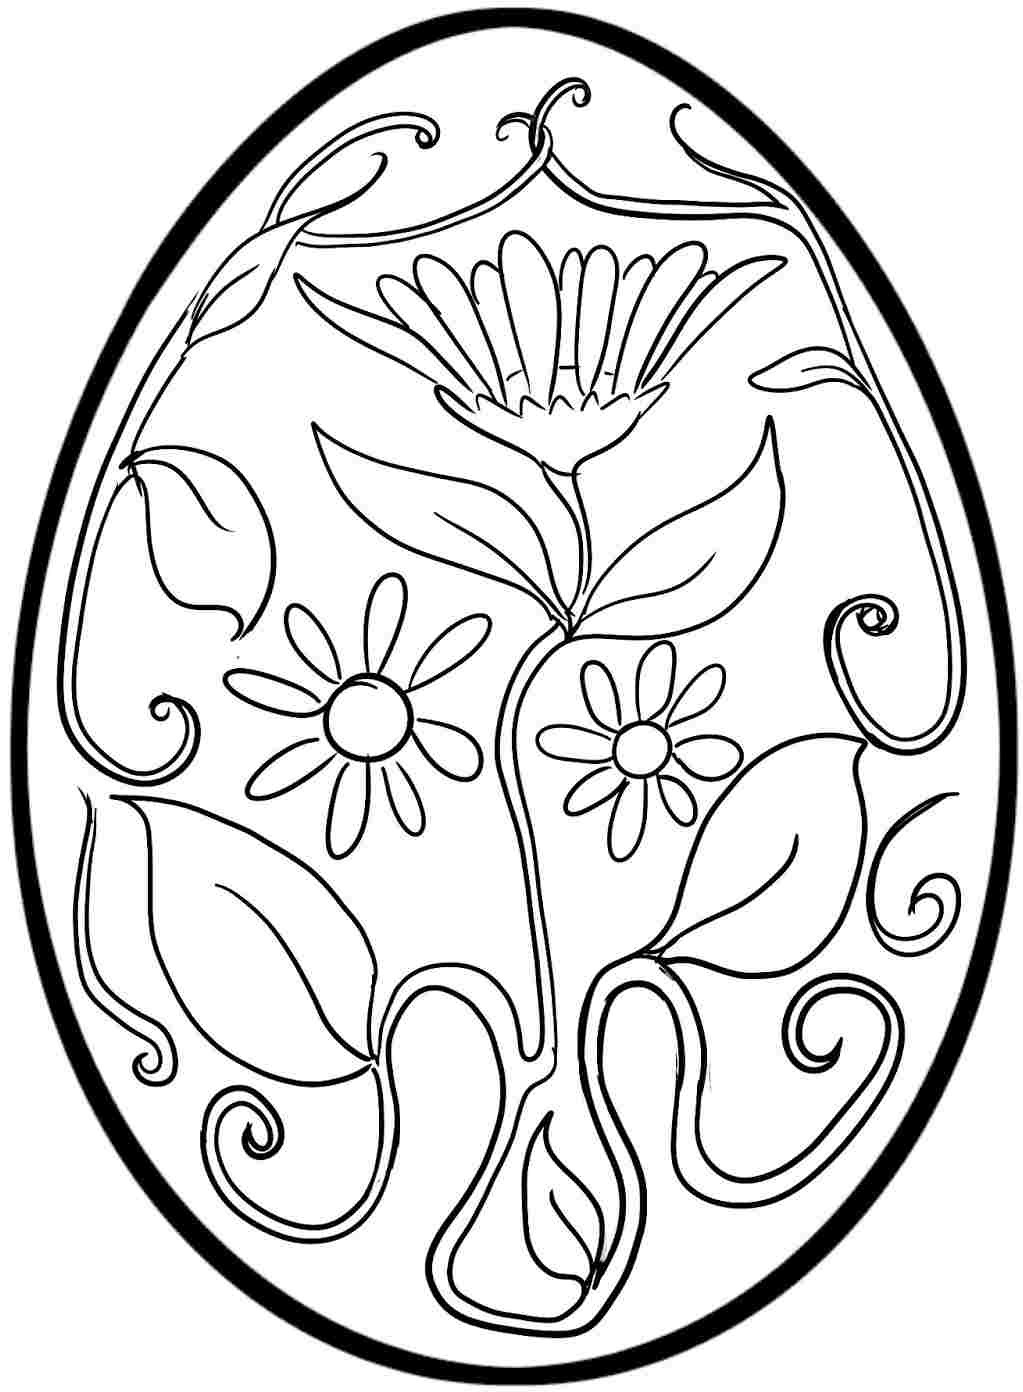 Best ideas about Easter Egg Free Coloring Sheets . Save or Pin free printable easter egg coloring pages Now.